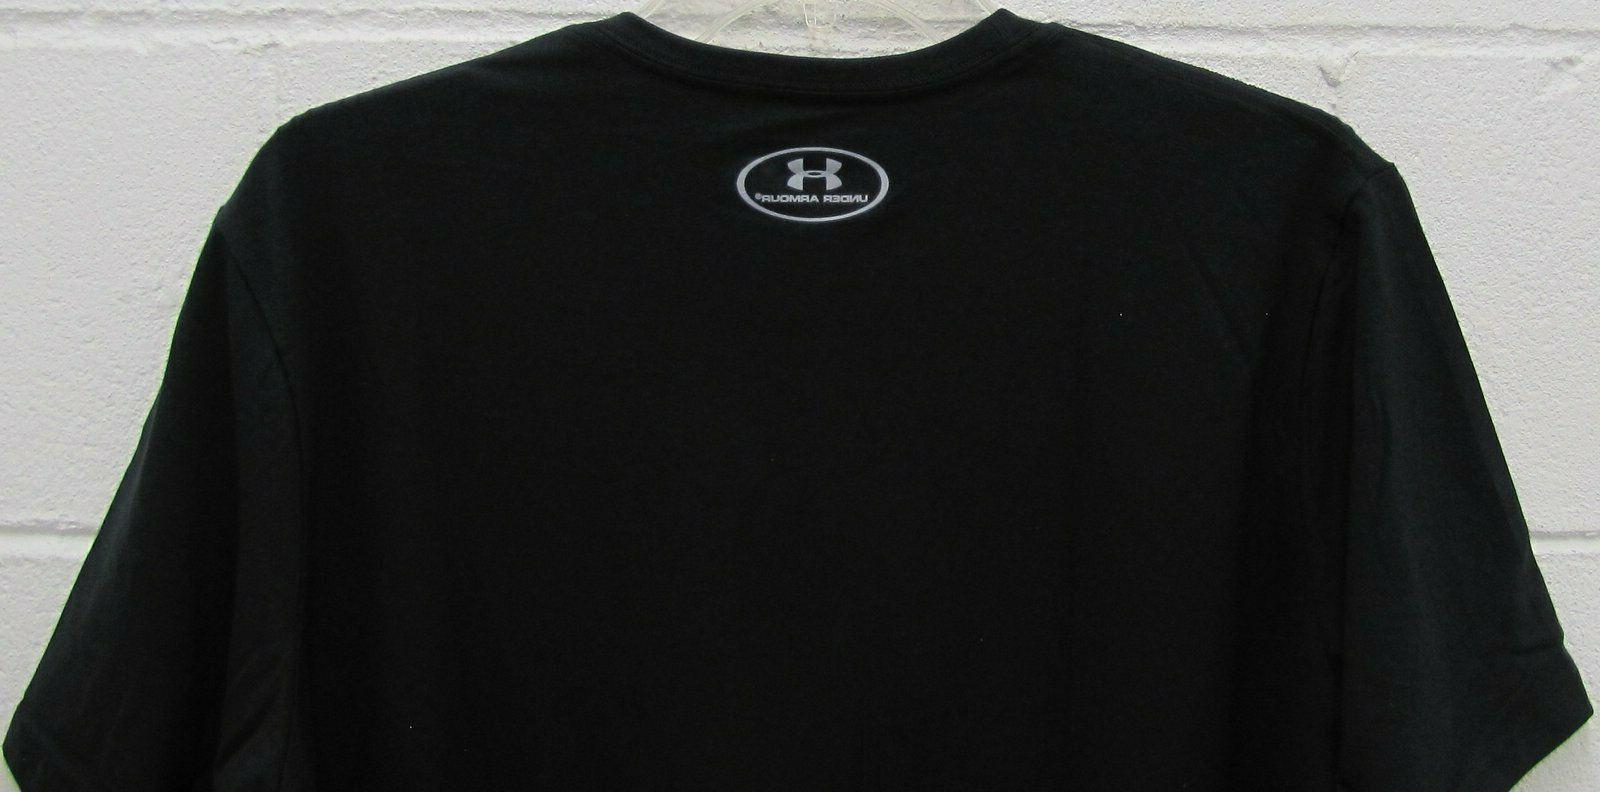 Under Heat Gear Shirt Short Sleeve Black M New